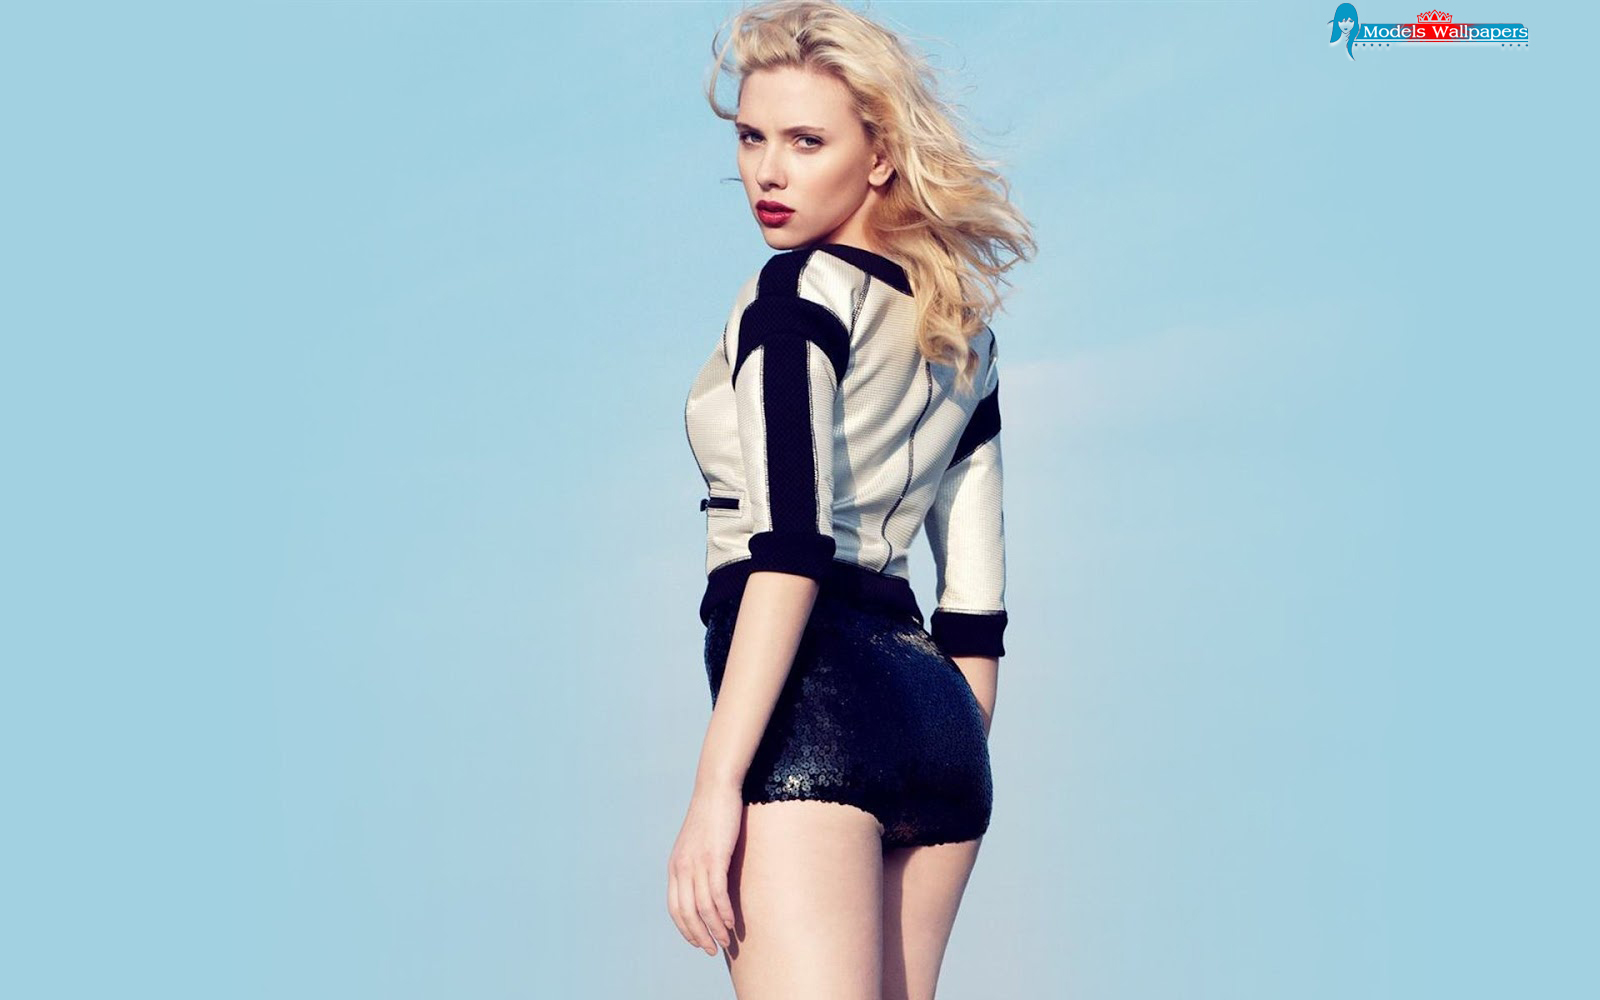 scarlett johansson model - photo #15